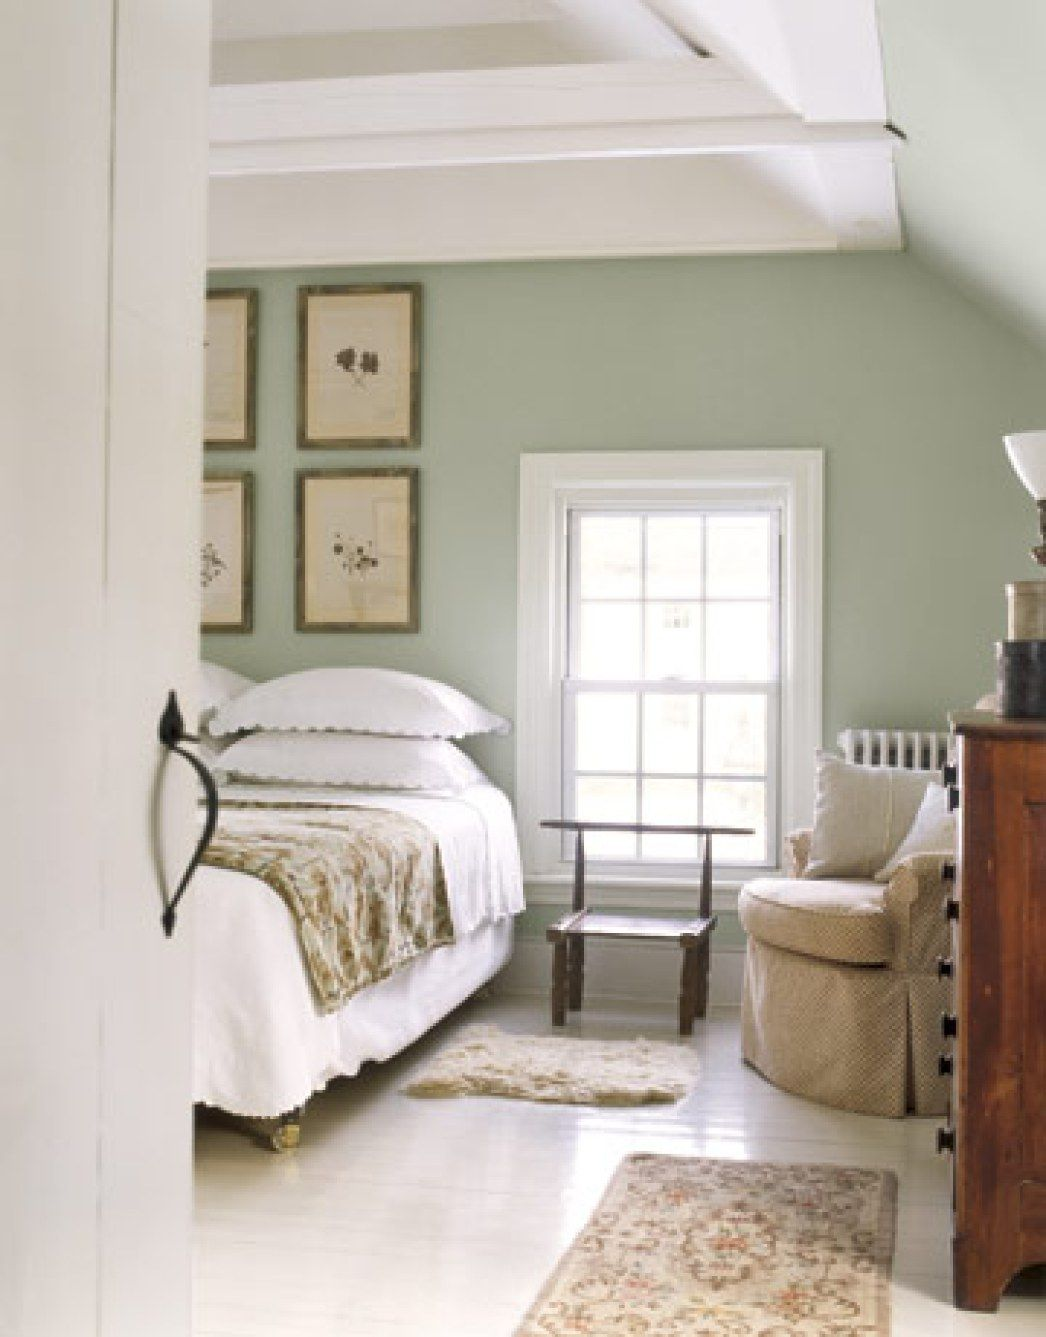 Decorating bedroom simple farmhouse decorating ideas how to get the look  room bedrooms and